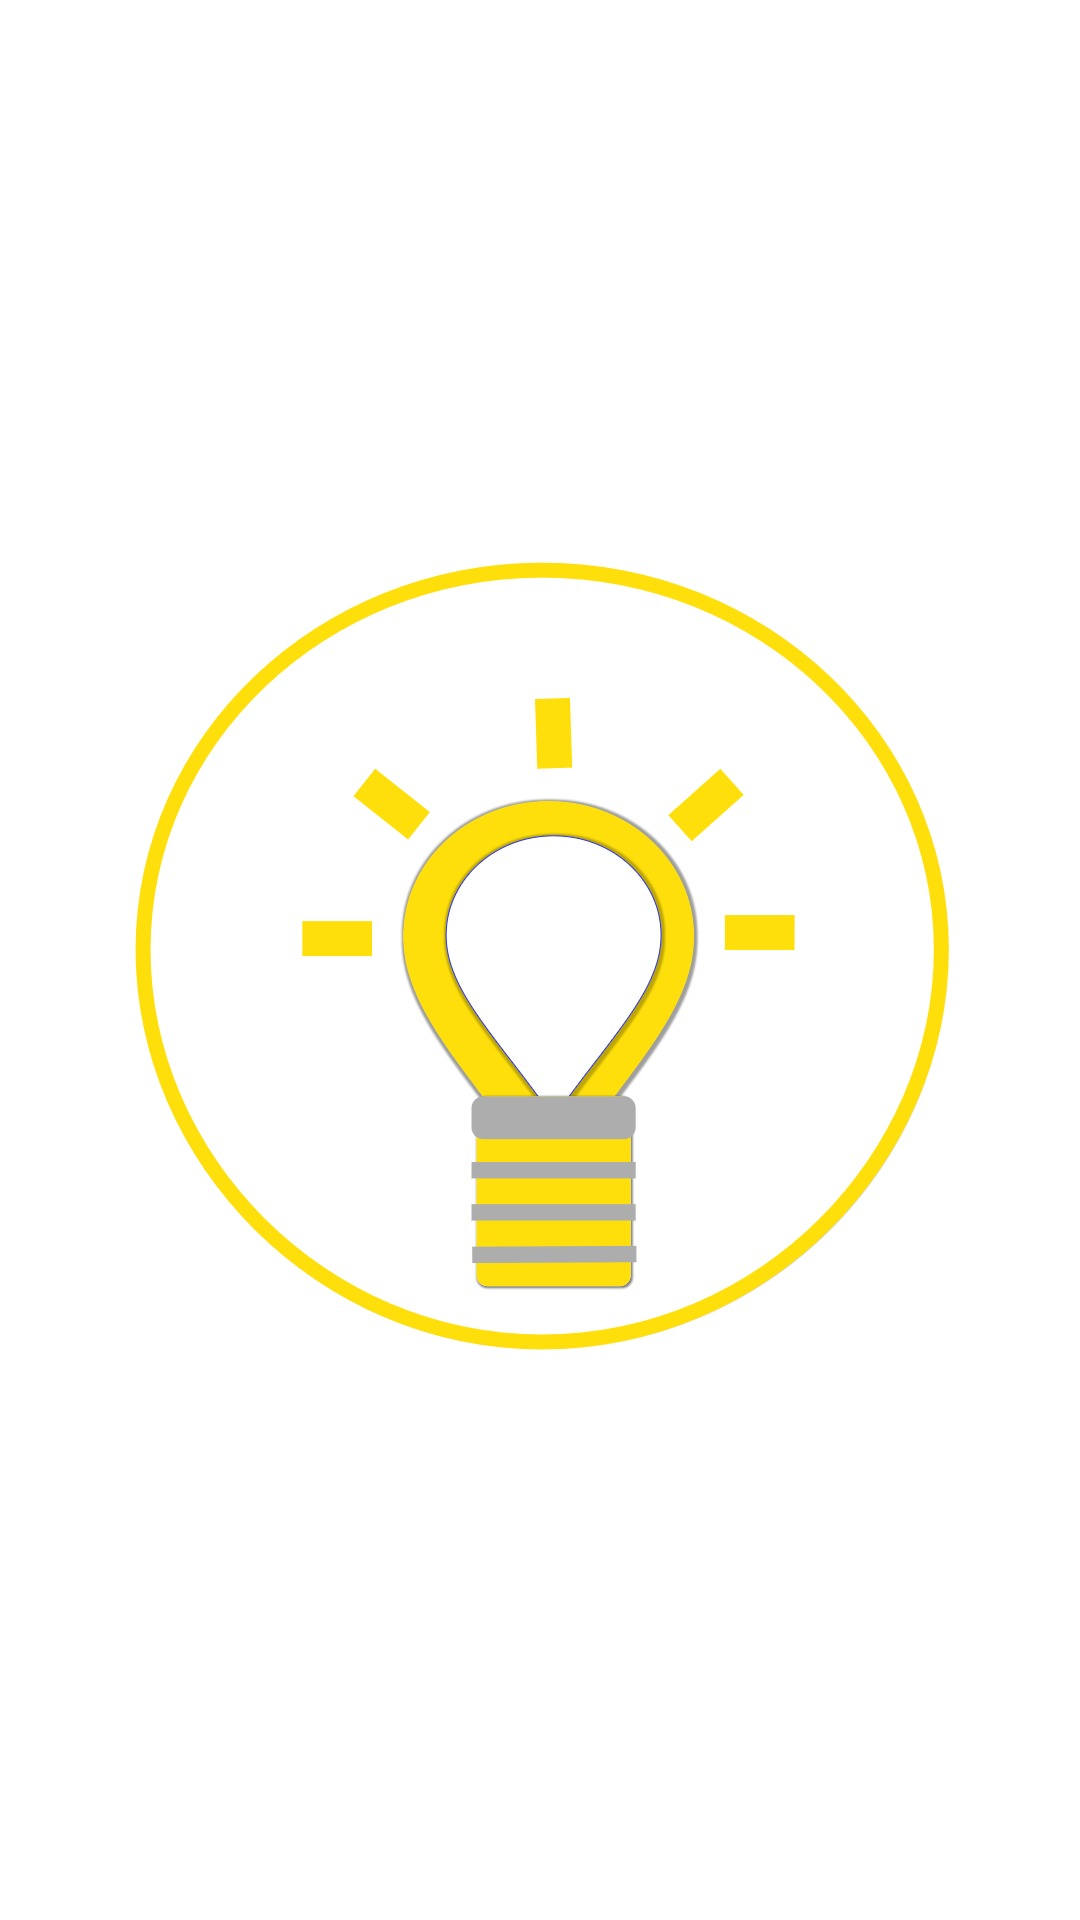 Instagram-cover-lightbulb-yellow-white-lotnotes.jpg